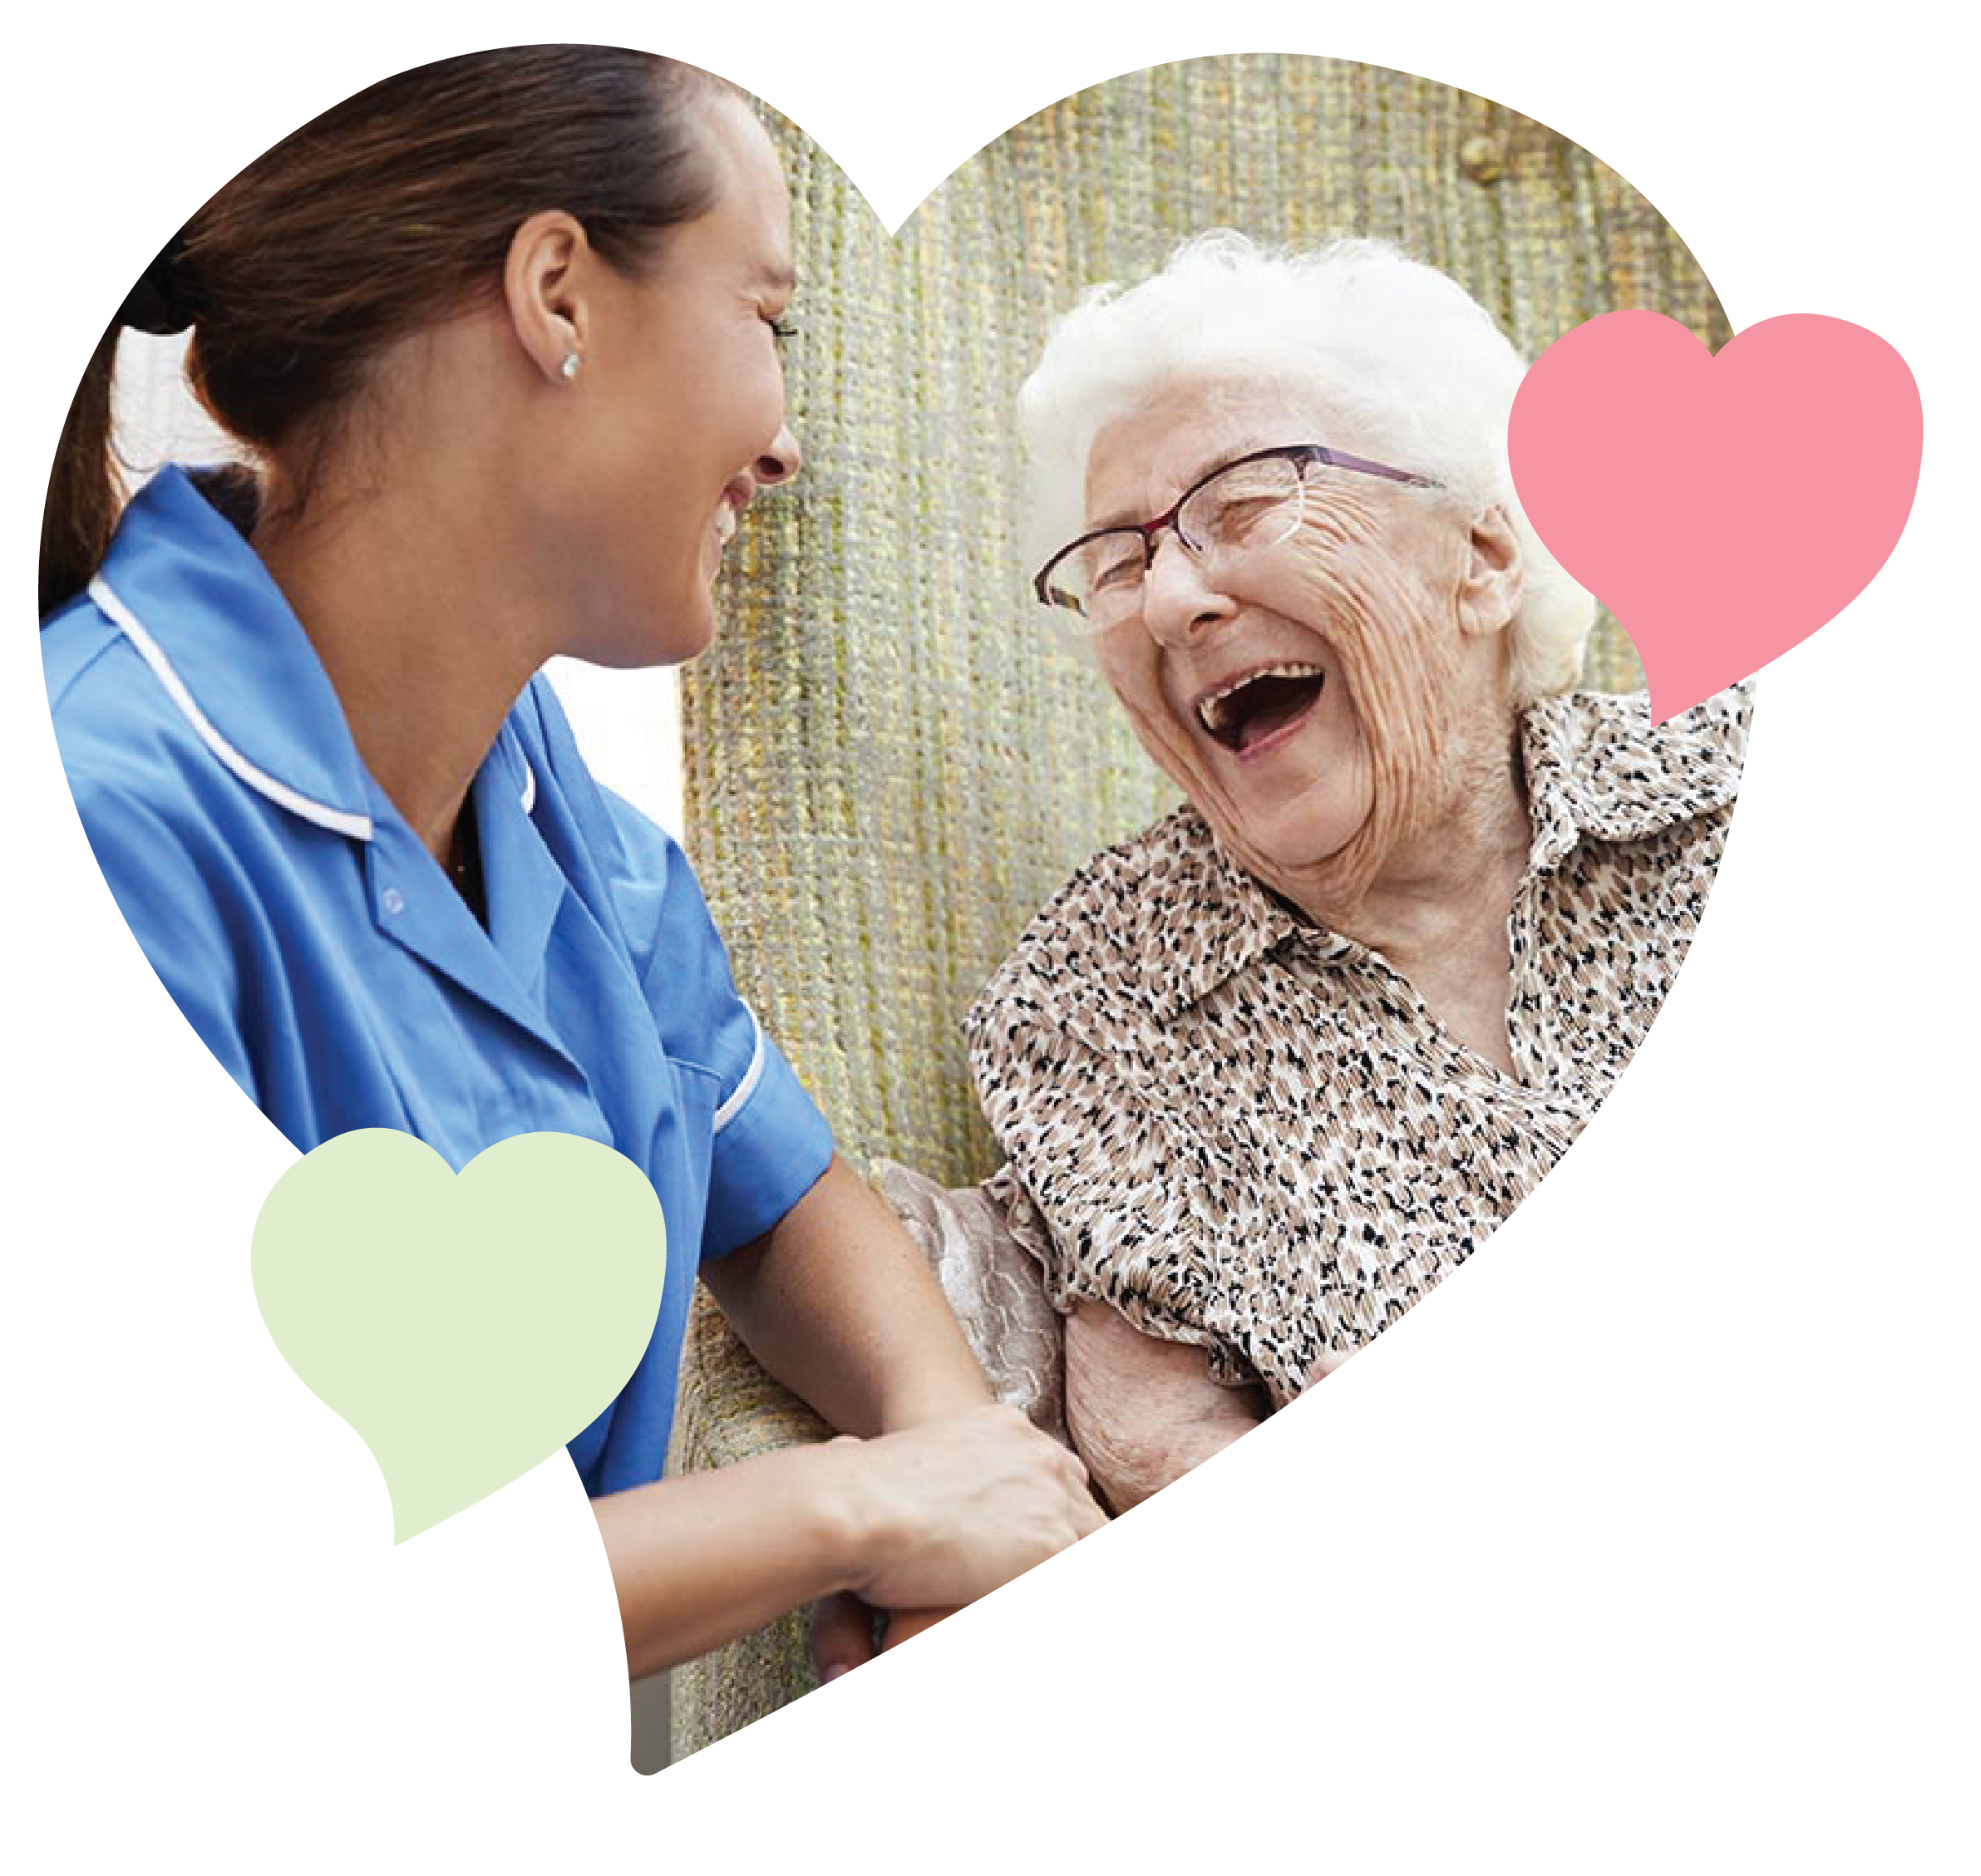 Photo of an elderly woman and her caretaker laughing together